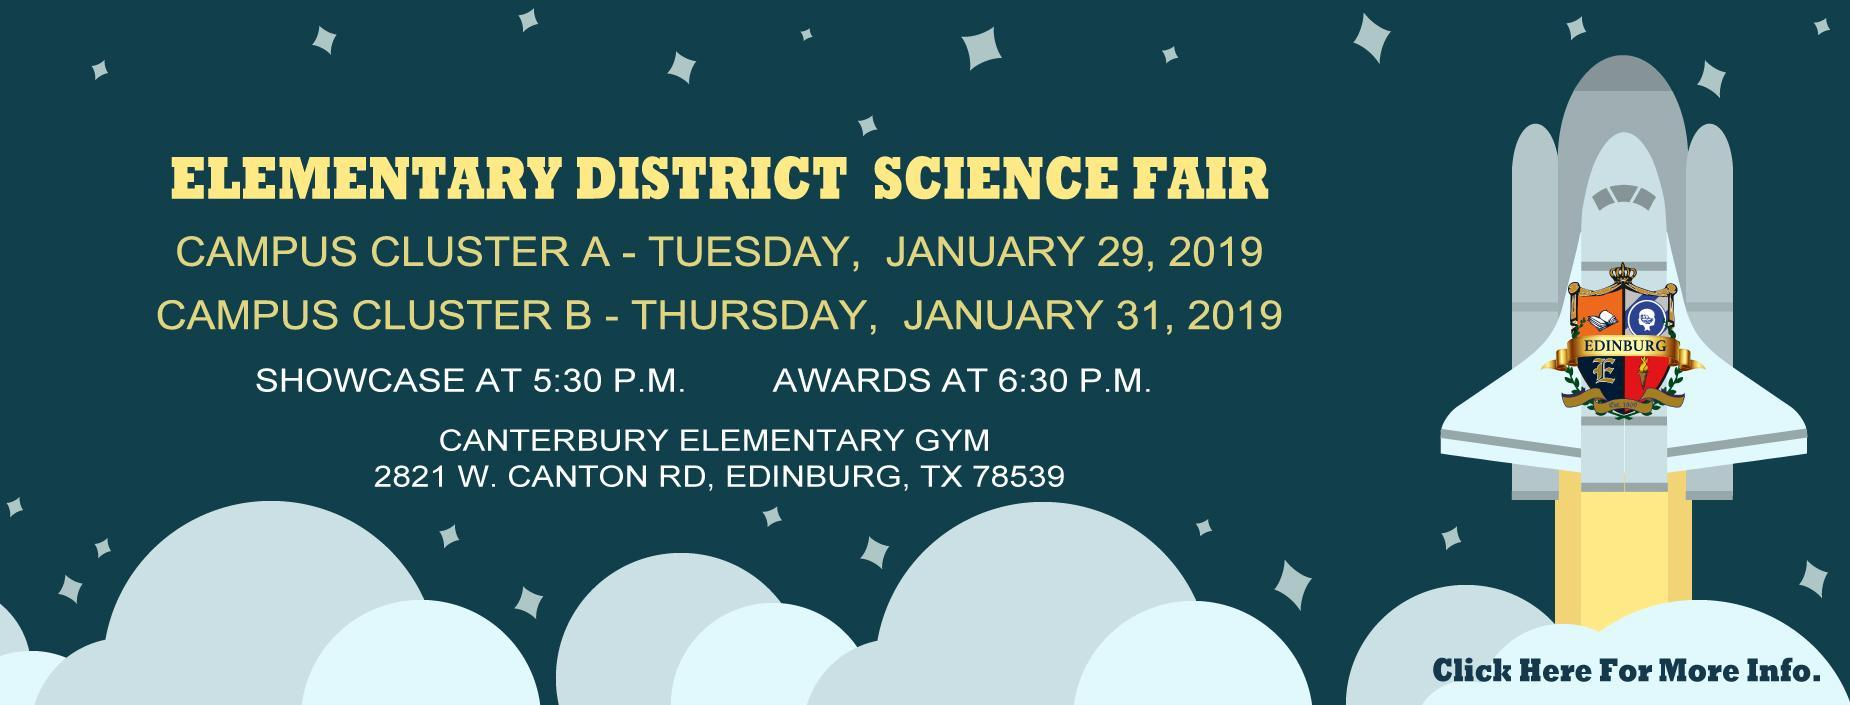 Elementary District Science Fair